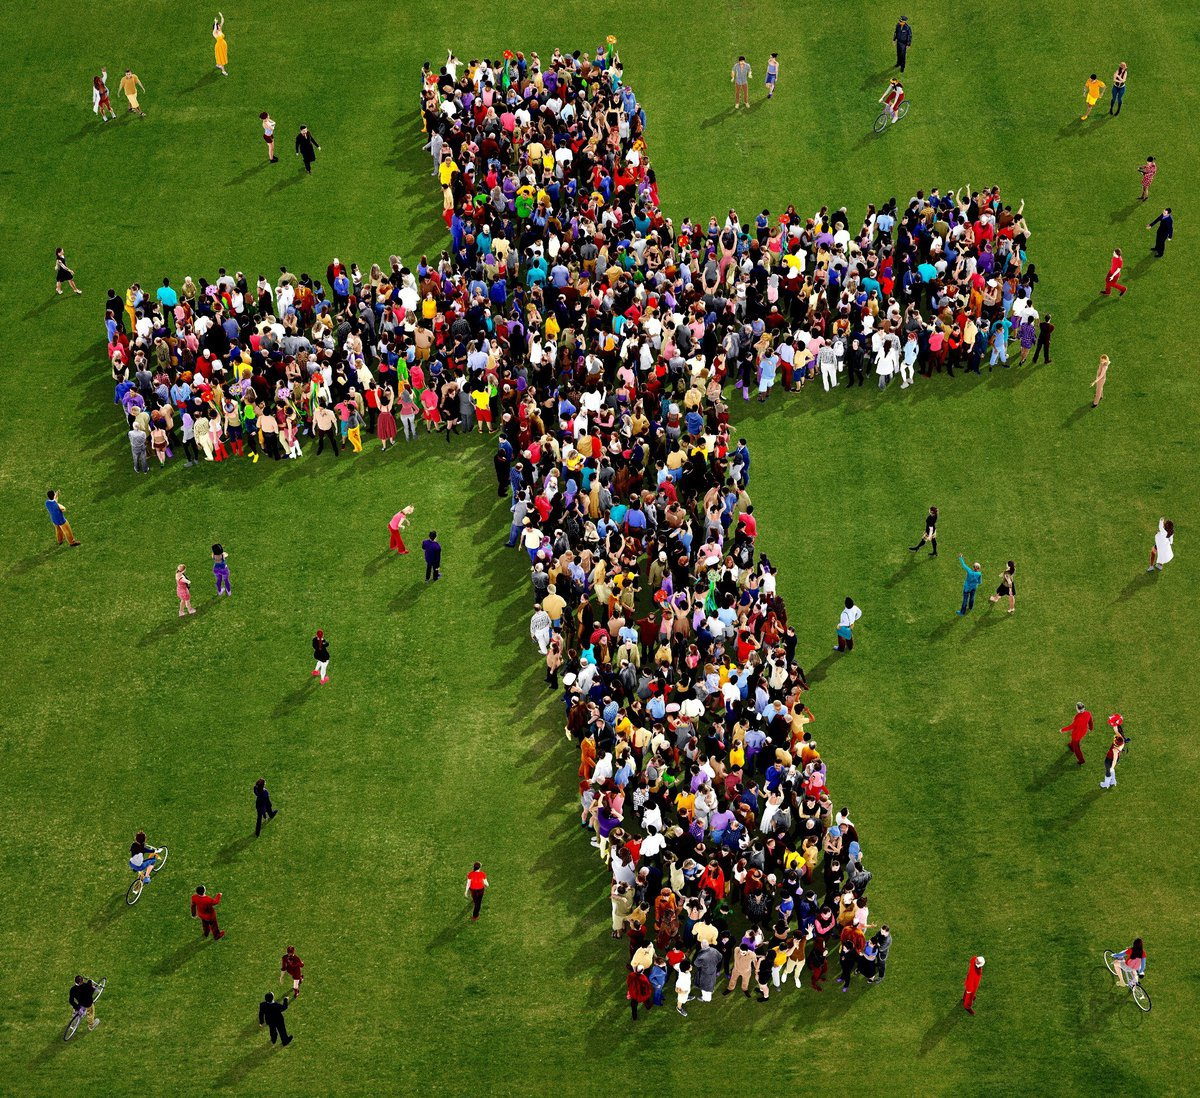 Crucifix shape comprising people on a lawn